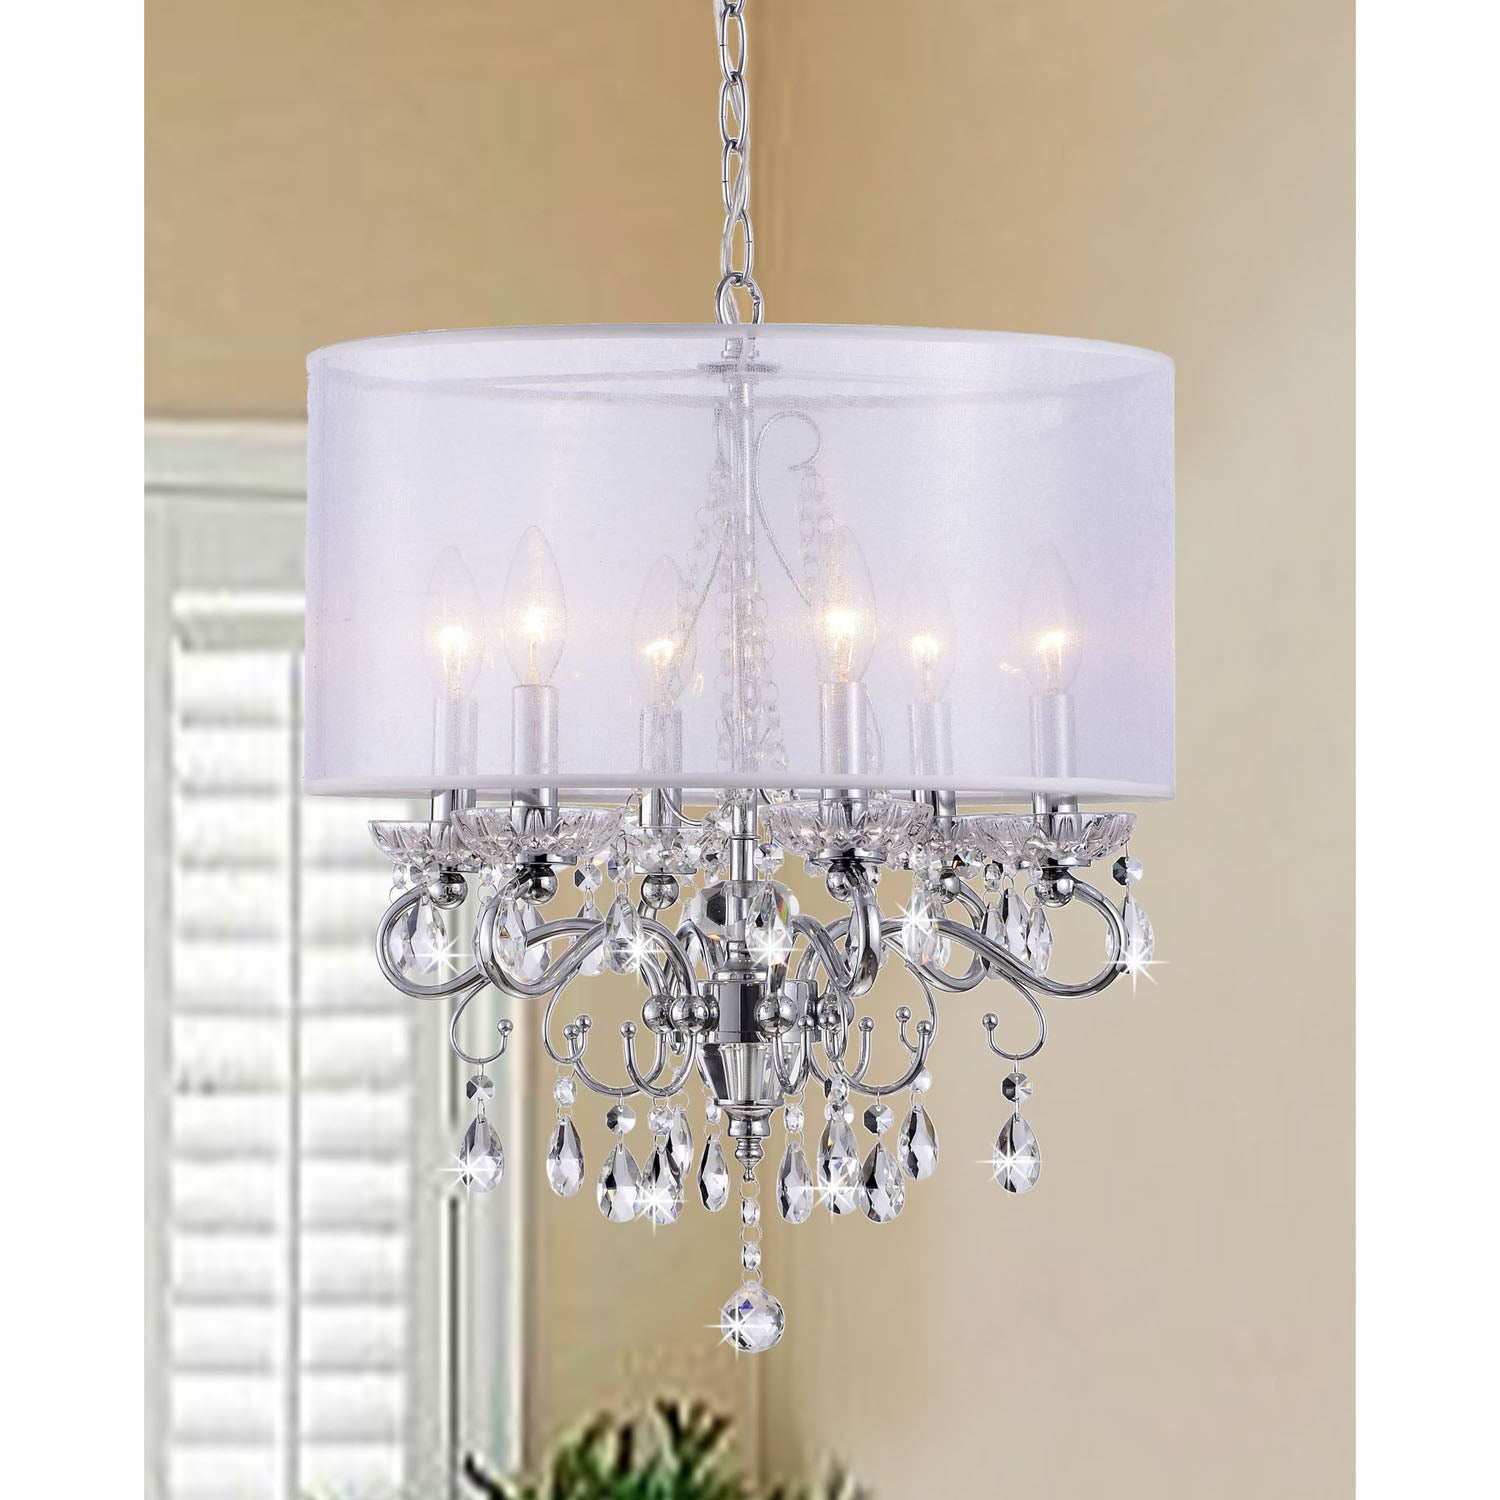 Allured crystal chandelier with translucent fabric shade free allured crystal chandelier with translucent fabric shade free shipping today overstock 14973843 arubaitofo Gallery